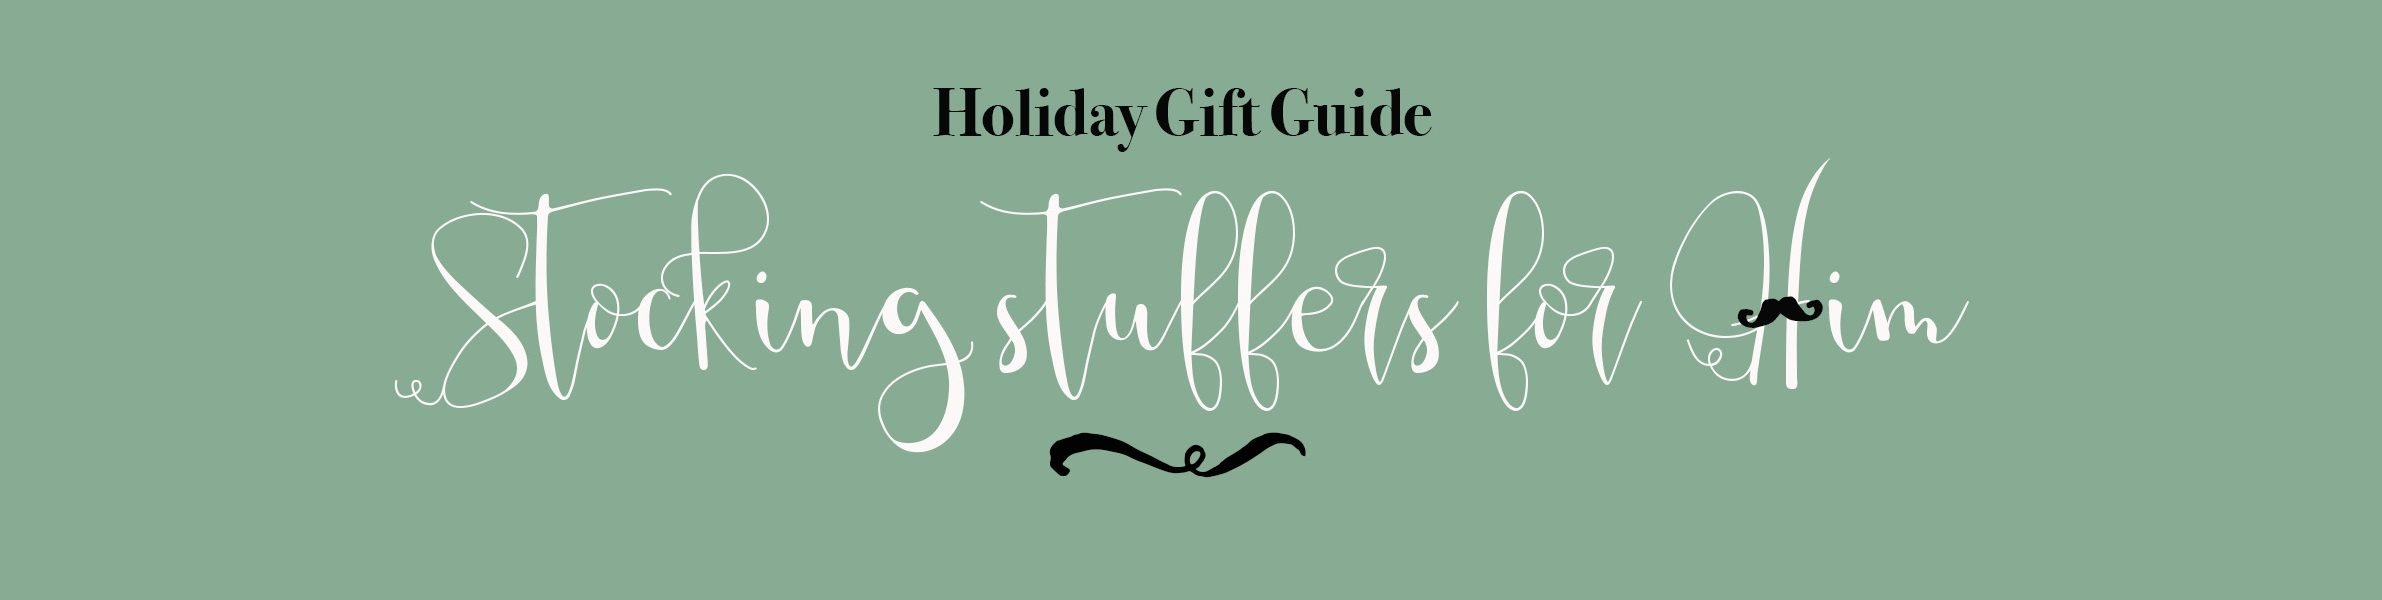 Men's Holiday Gift Guide